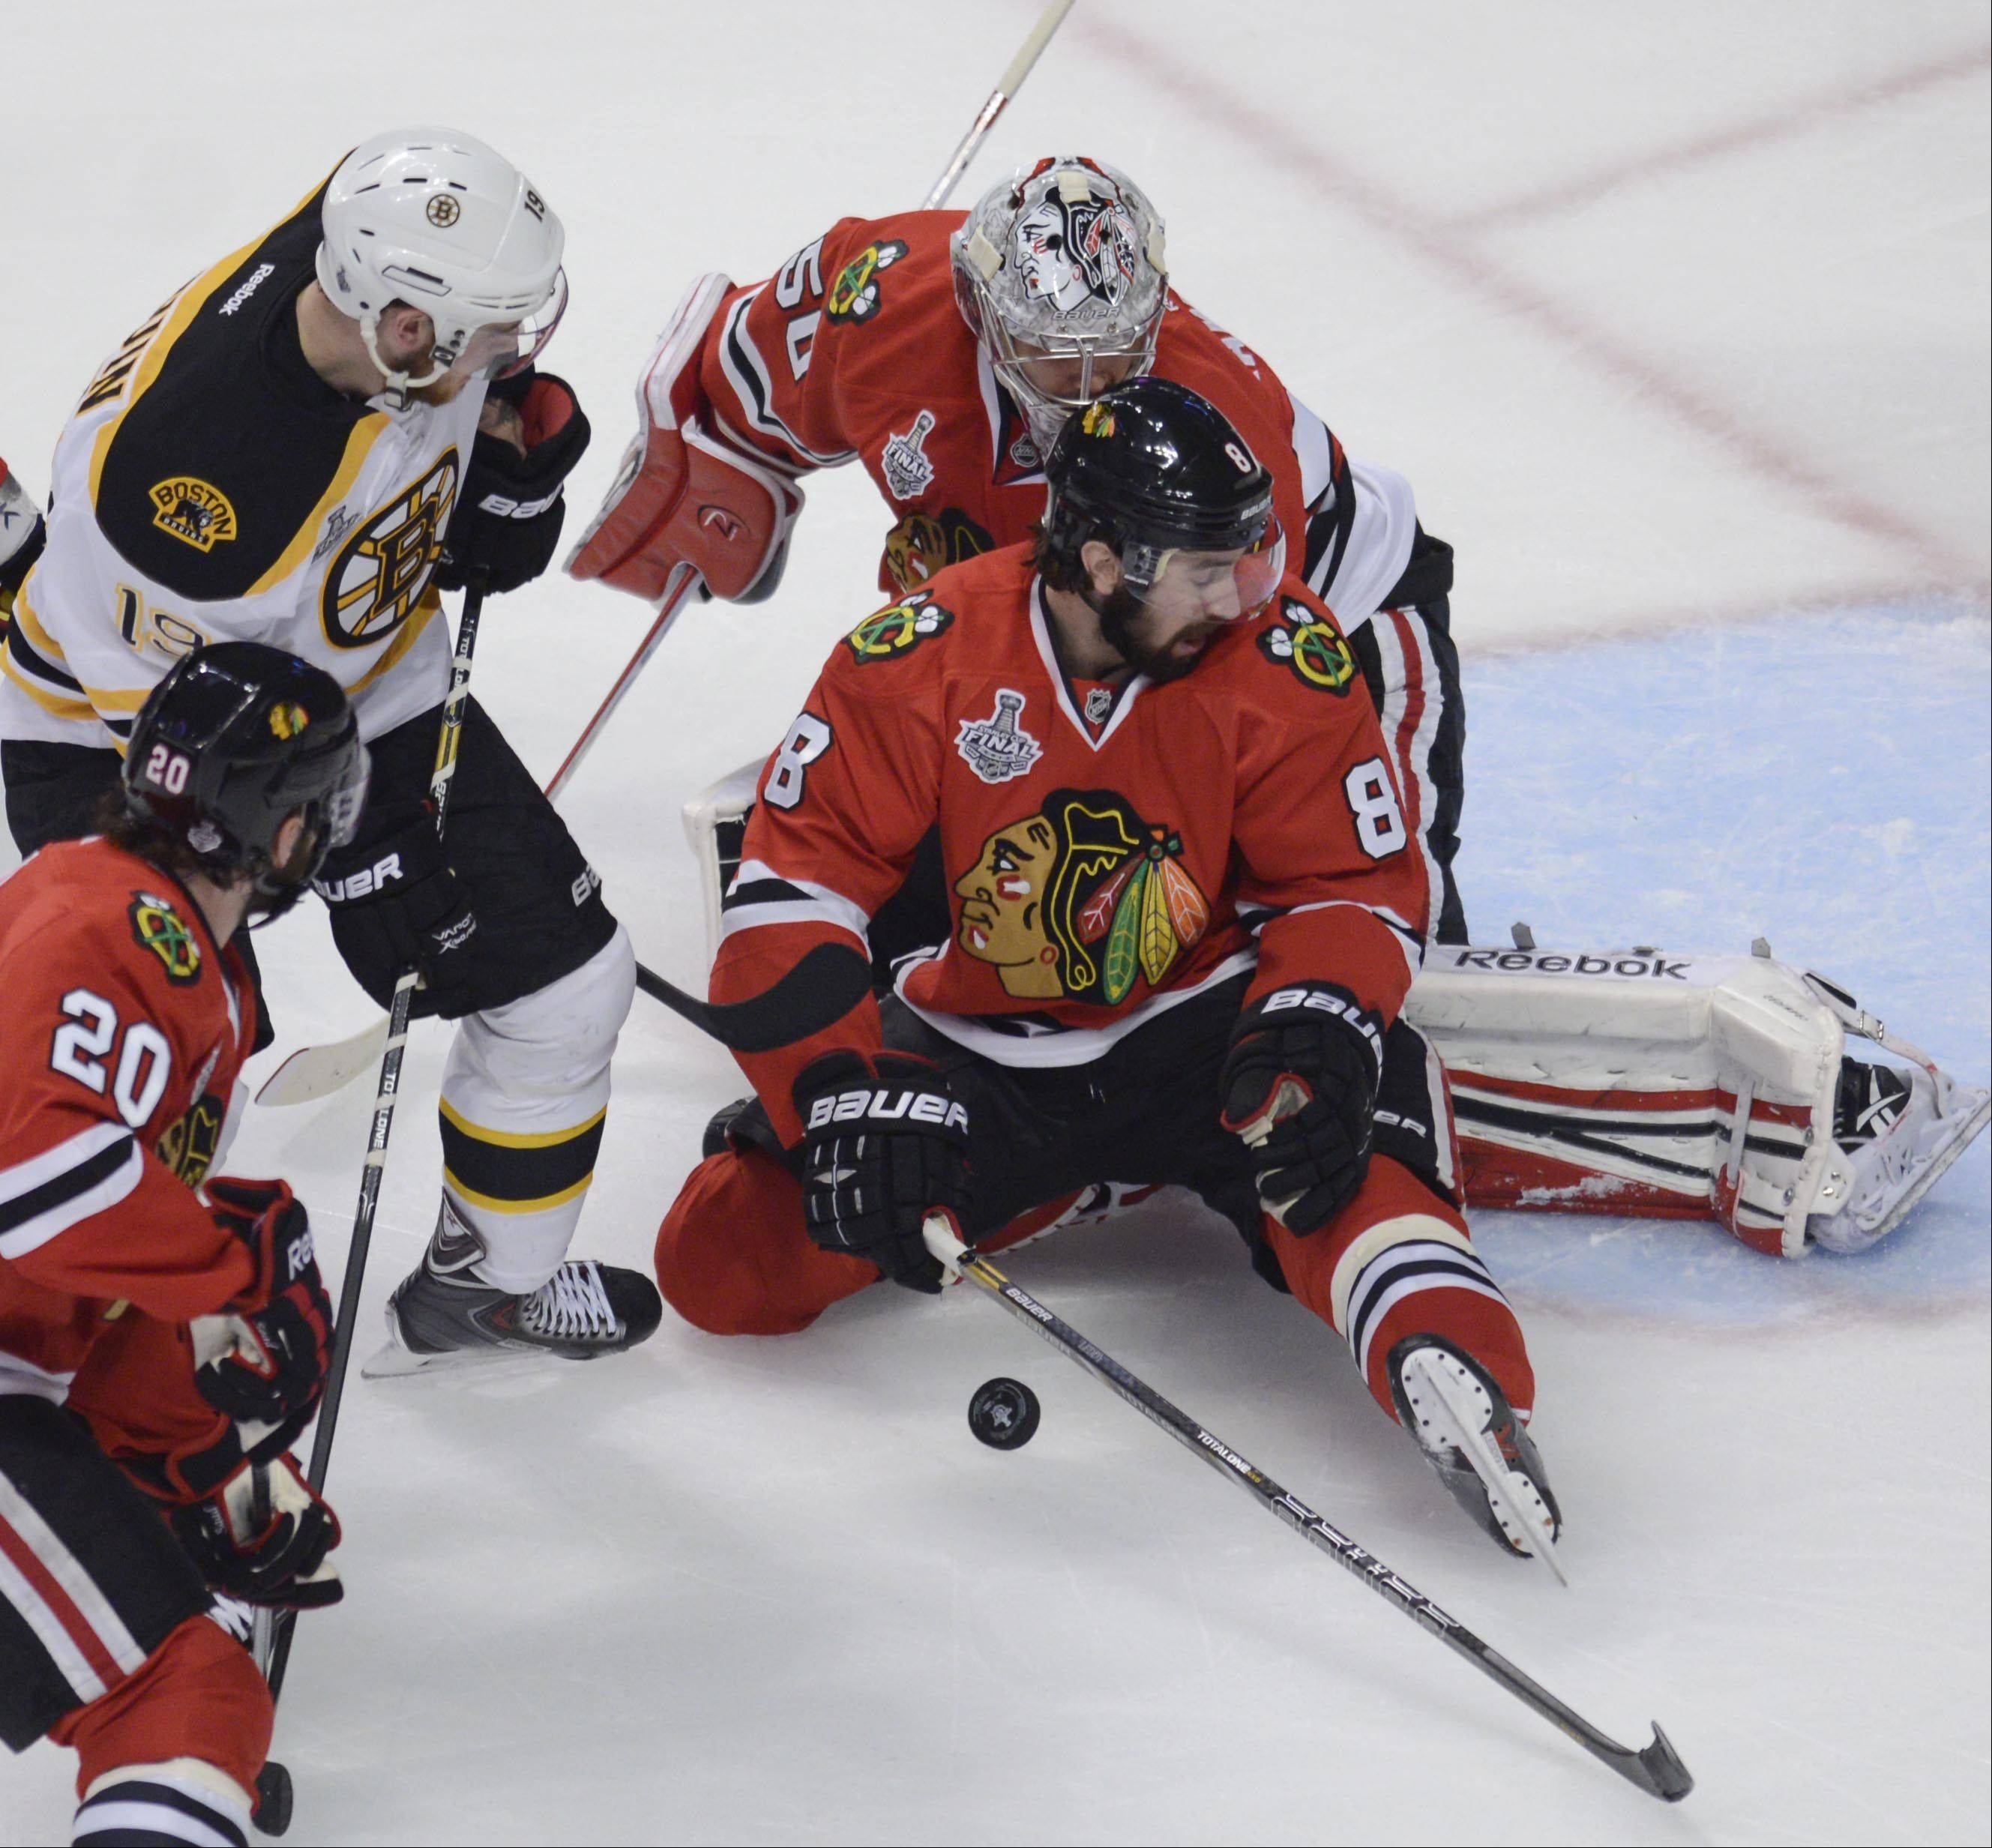 Chicago Blackhawks defenseman Nick Leddy, and goalie Corey Crawford block a shot by Boston Bruins center Tyler Seguin.